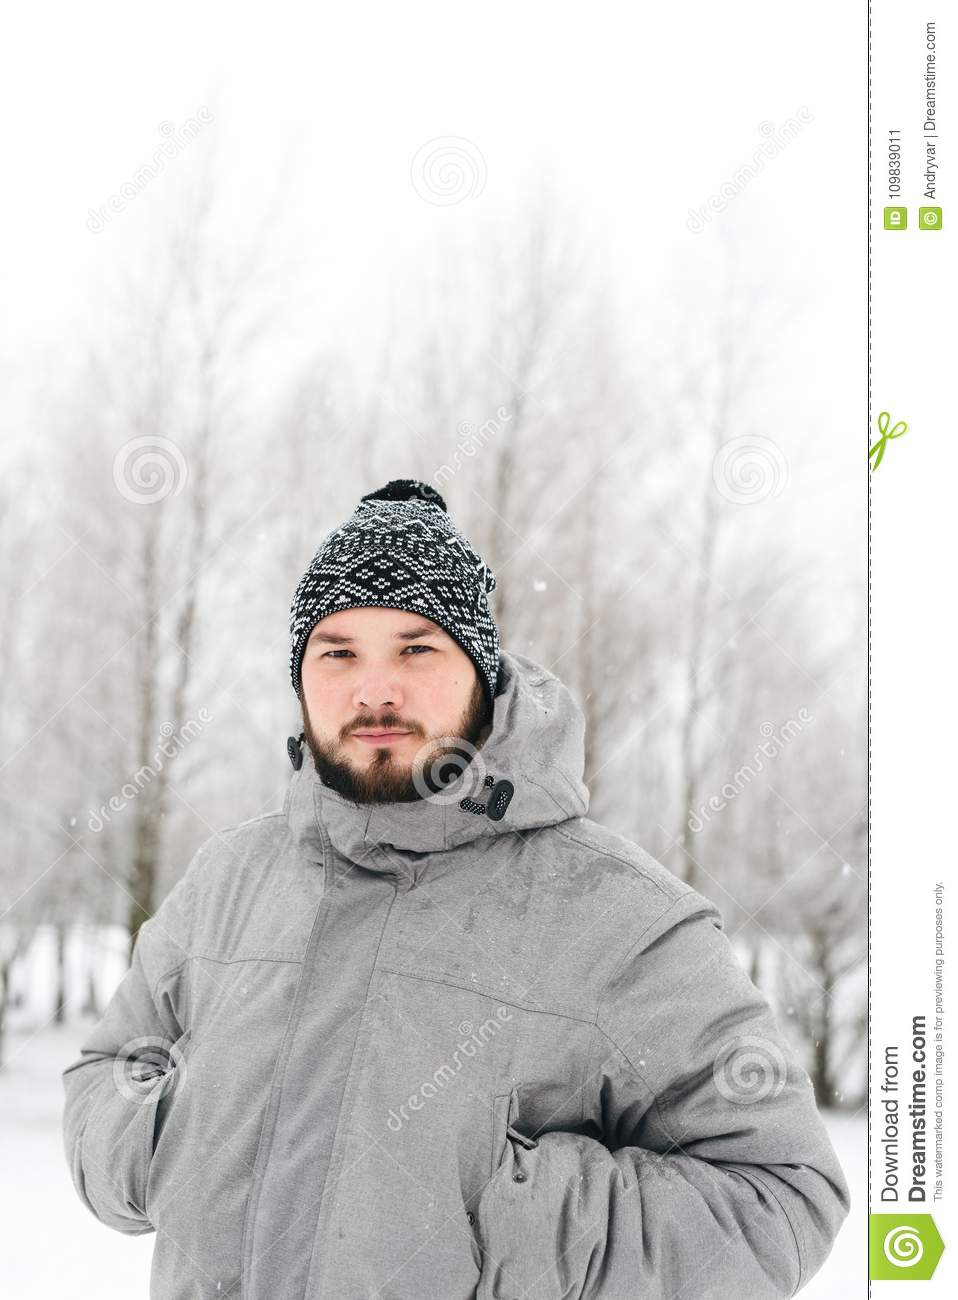 Beautiful Grey Waterproof Flooring Ideas For Living Room: A Man In A Gray Jacket In A Winter Forest Stock Image